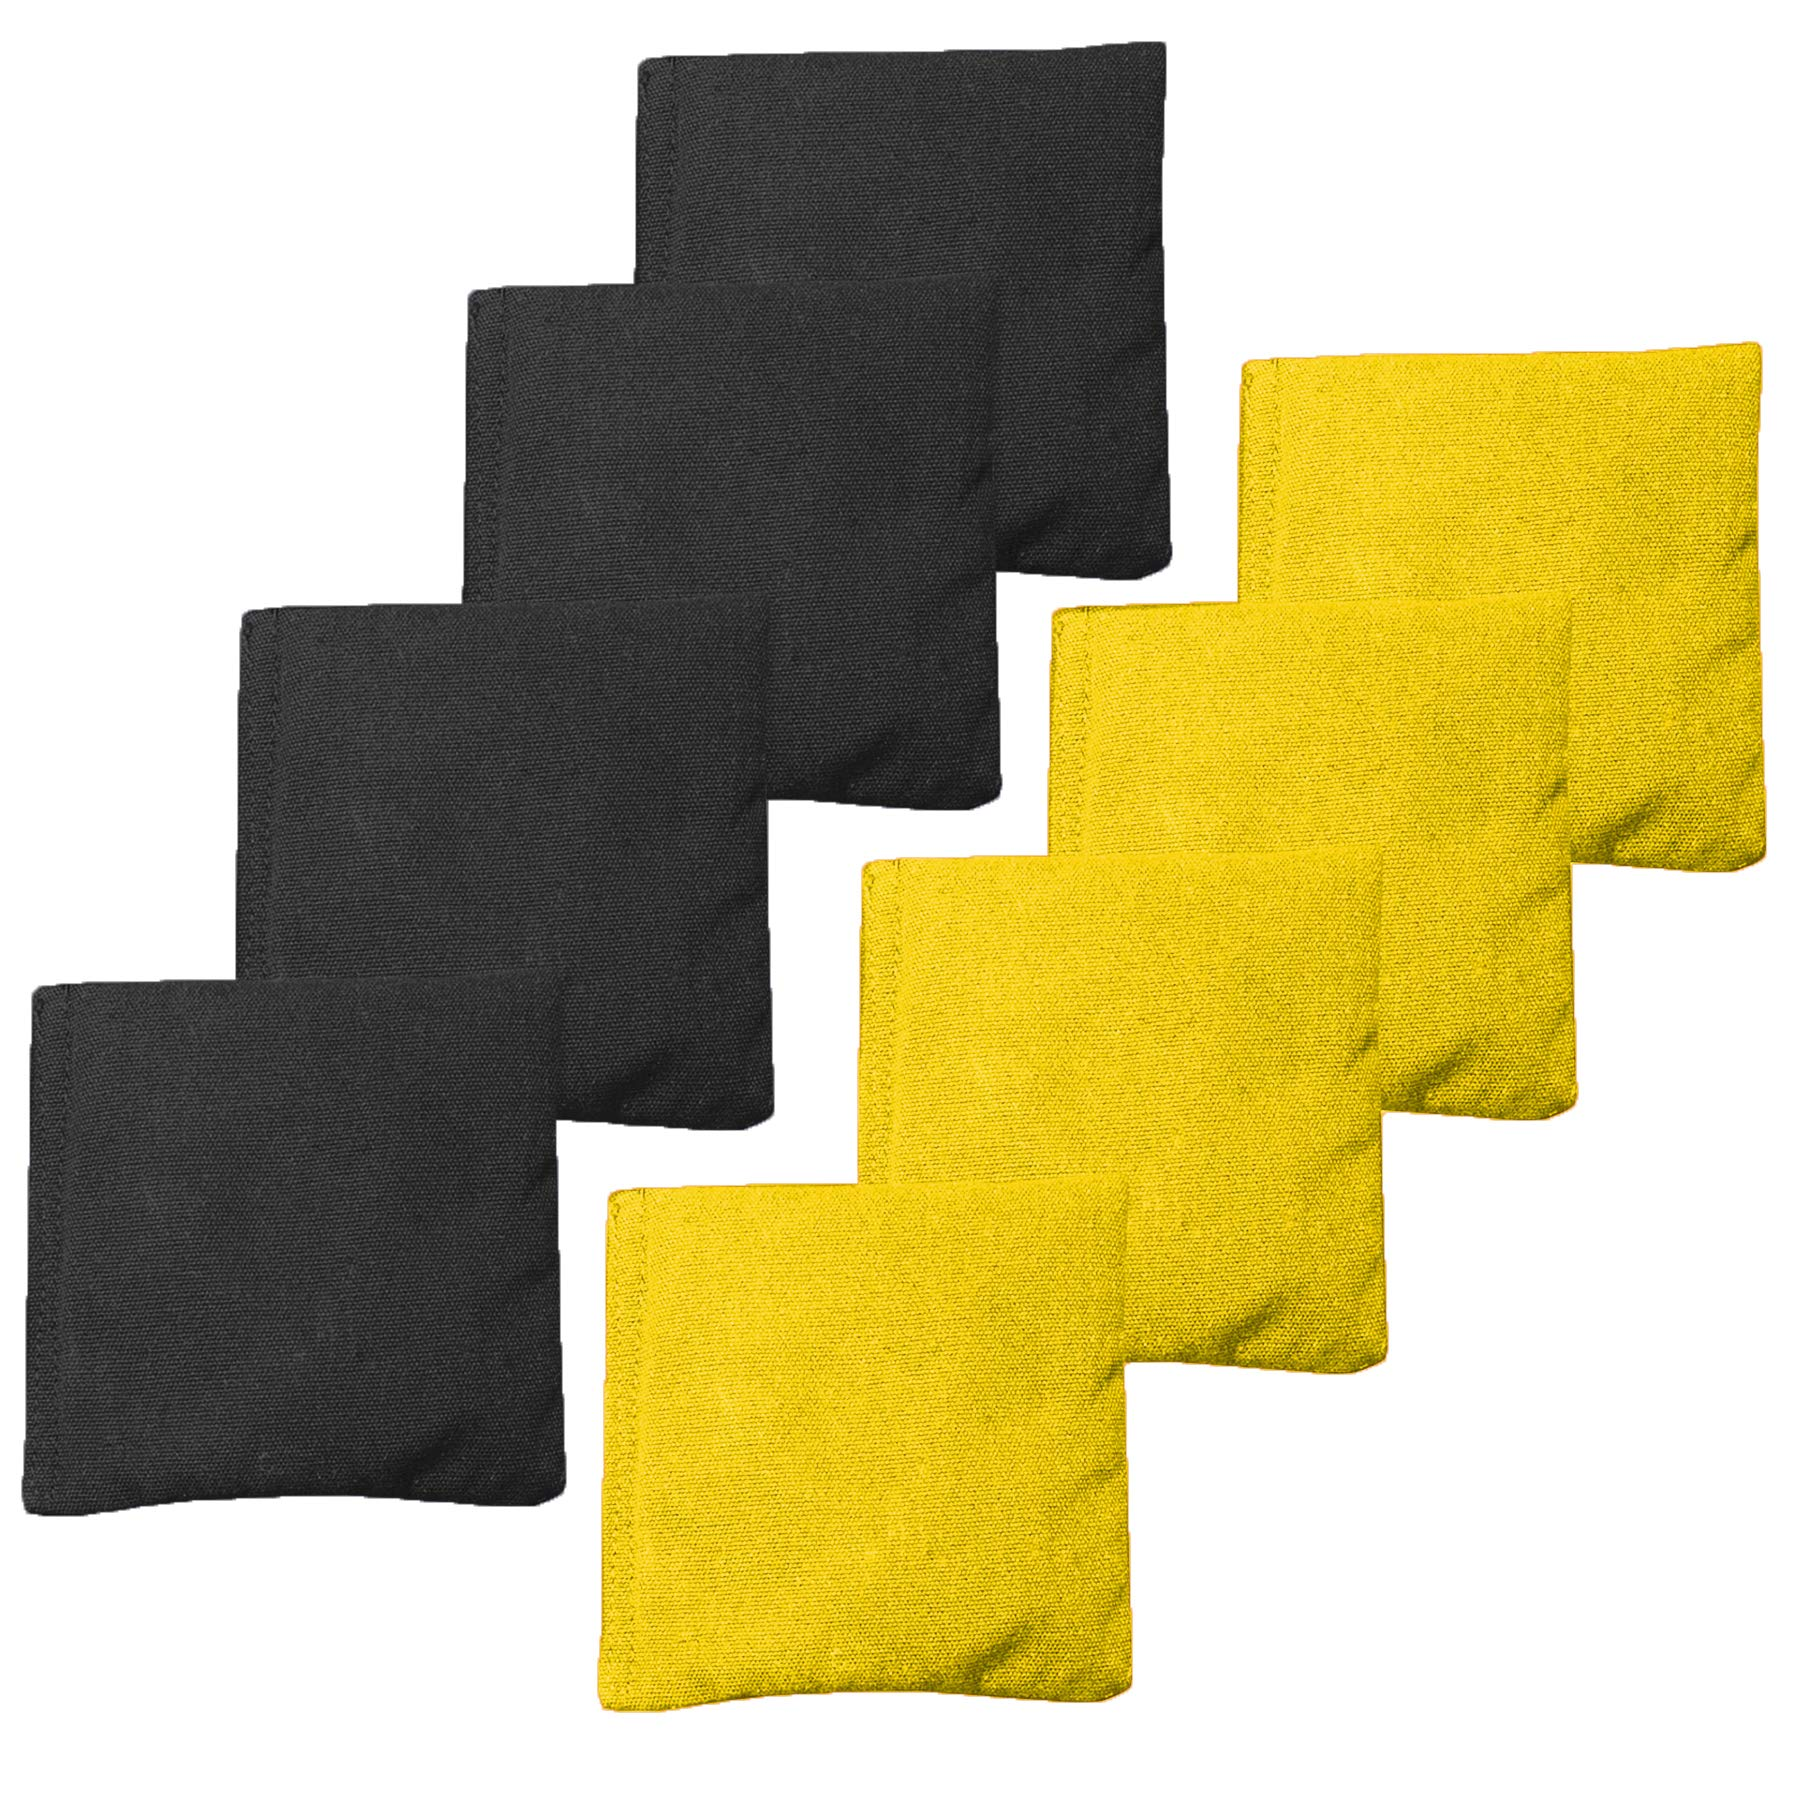 Play Platoon Premium Weather Resistant Duckcloth Cornhole Bags - Set of 8 Bean Bags for Corn Hole Game - Regulation Size & Weight - 4 Yellow & 4 Black by Play Platoon